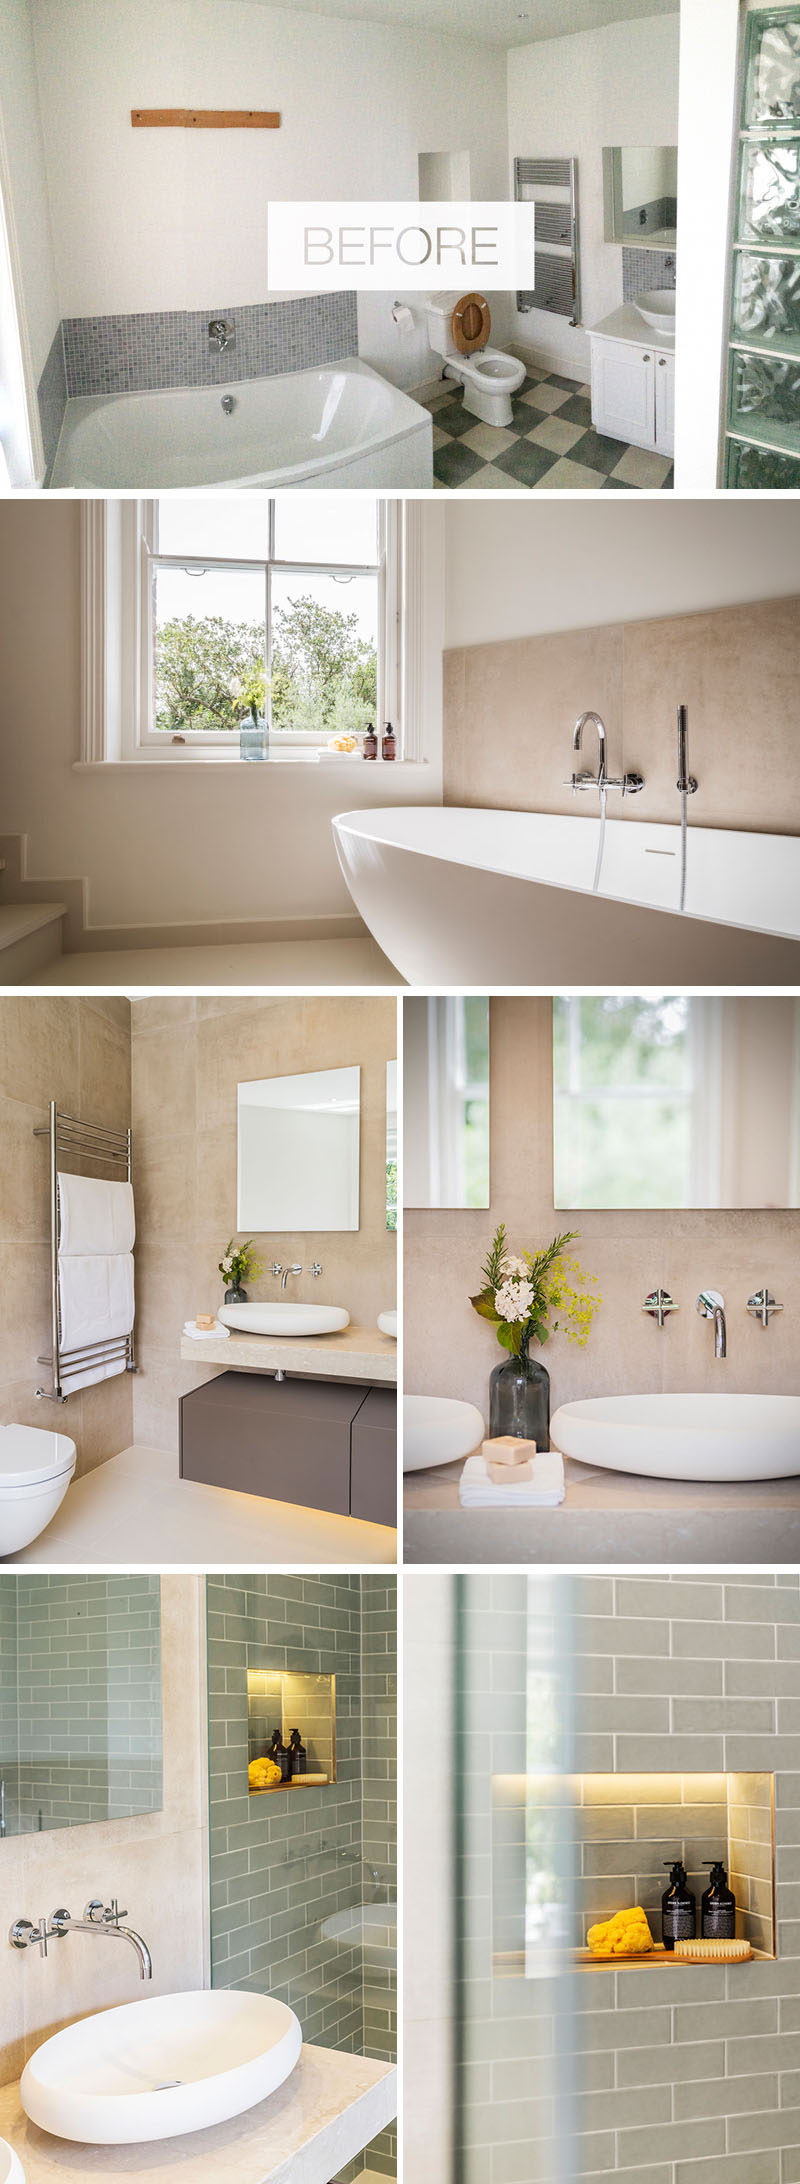 This renovated bathroom has a freestanding bathtub, new matte tiles on the floors, walls and ceiling, a new wall hung vanity, and a shower with polished ceramic tiles. #BathroomRenovation #ModernBathroom